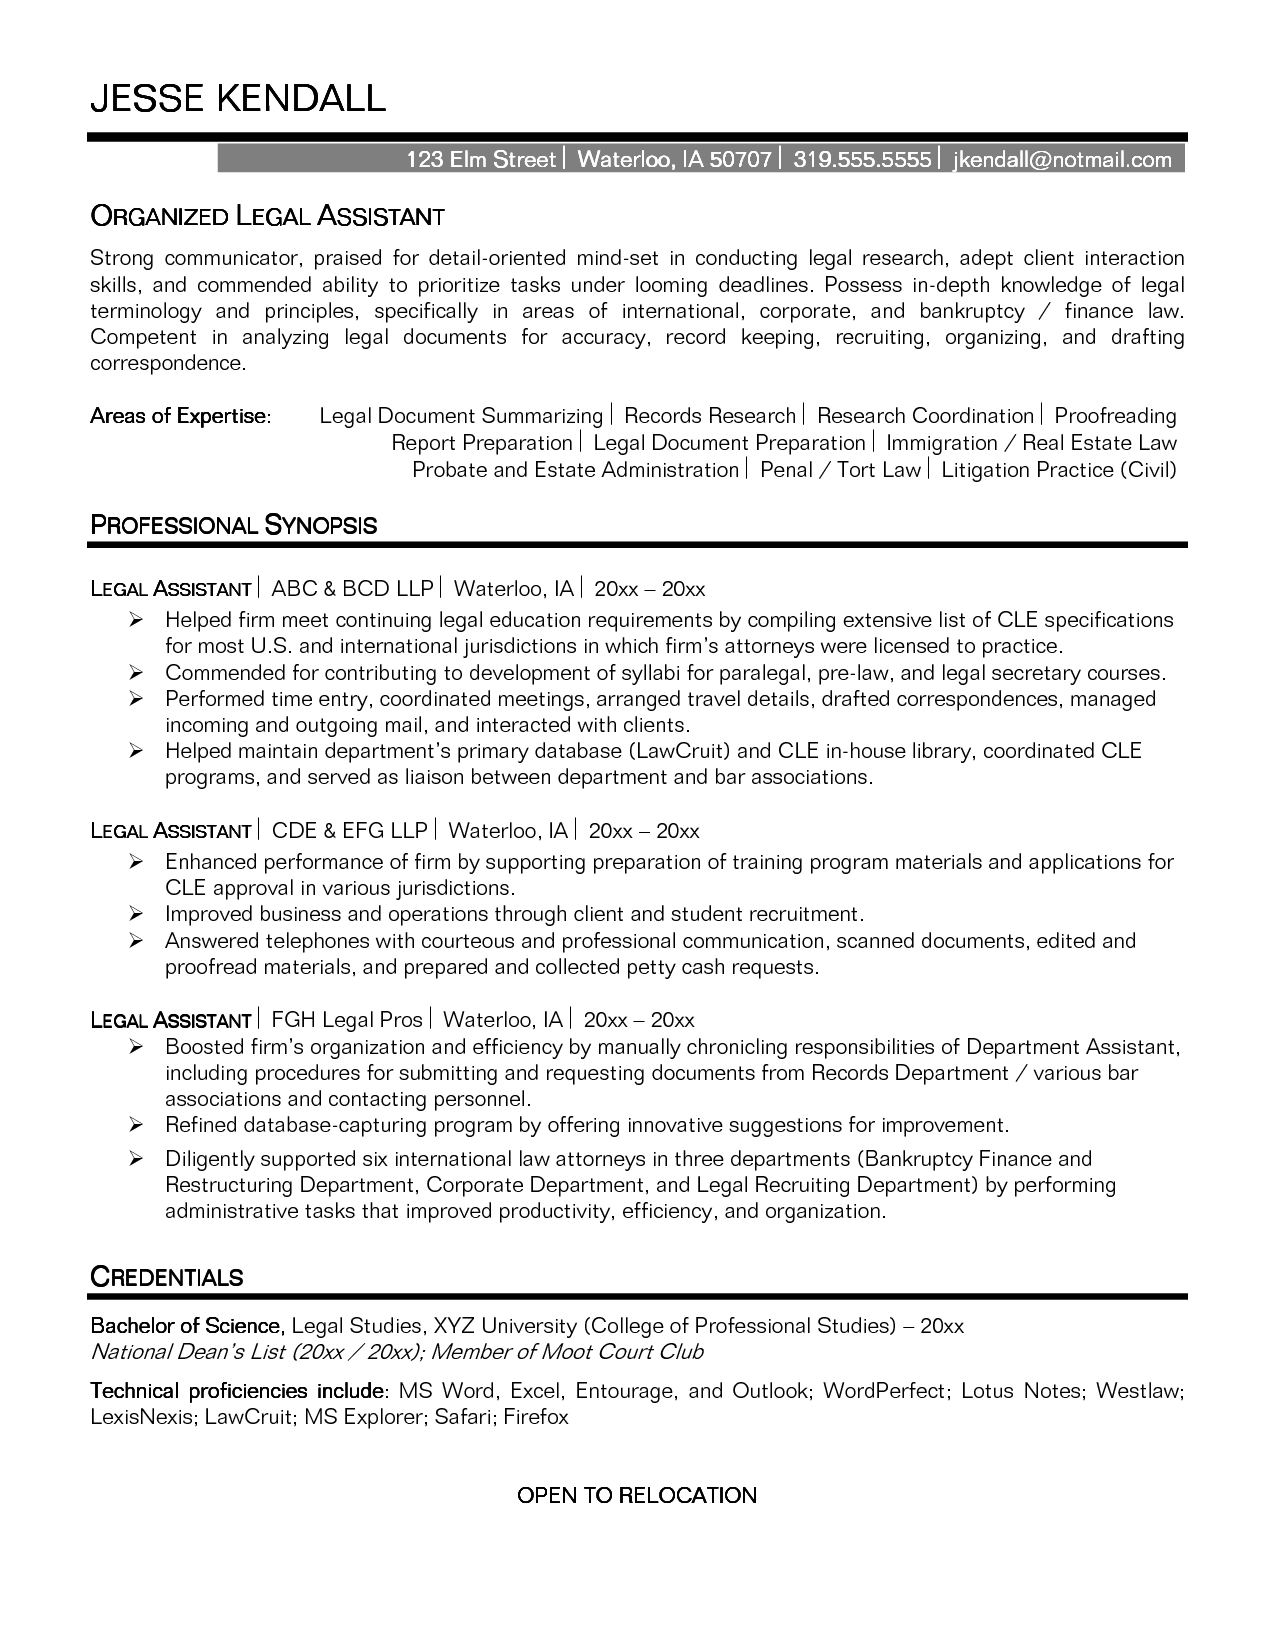 Objective Examples On Resume Objective Sample Resume Office Assistant Paralegal Objectives